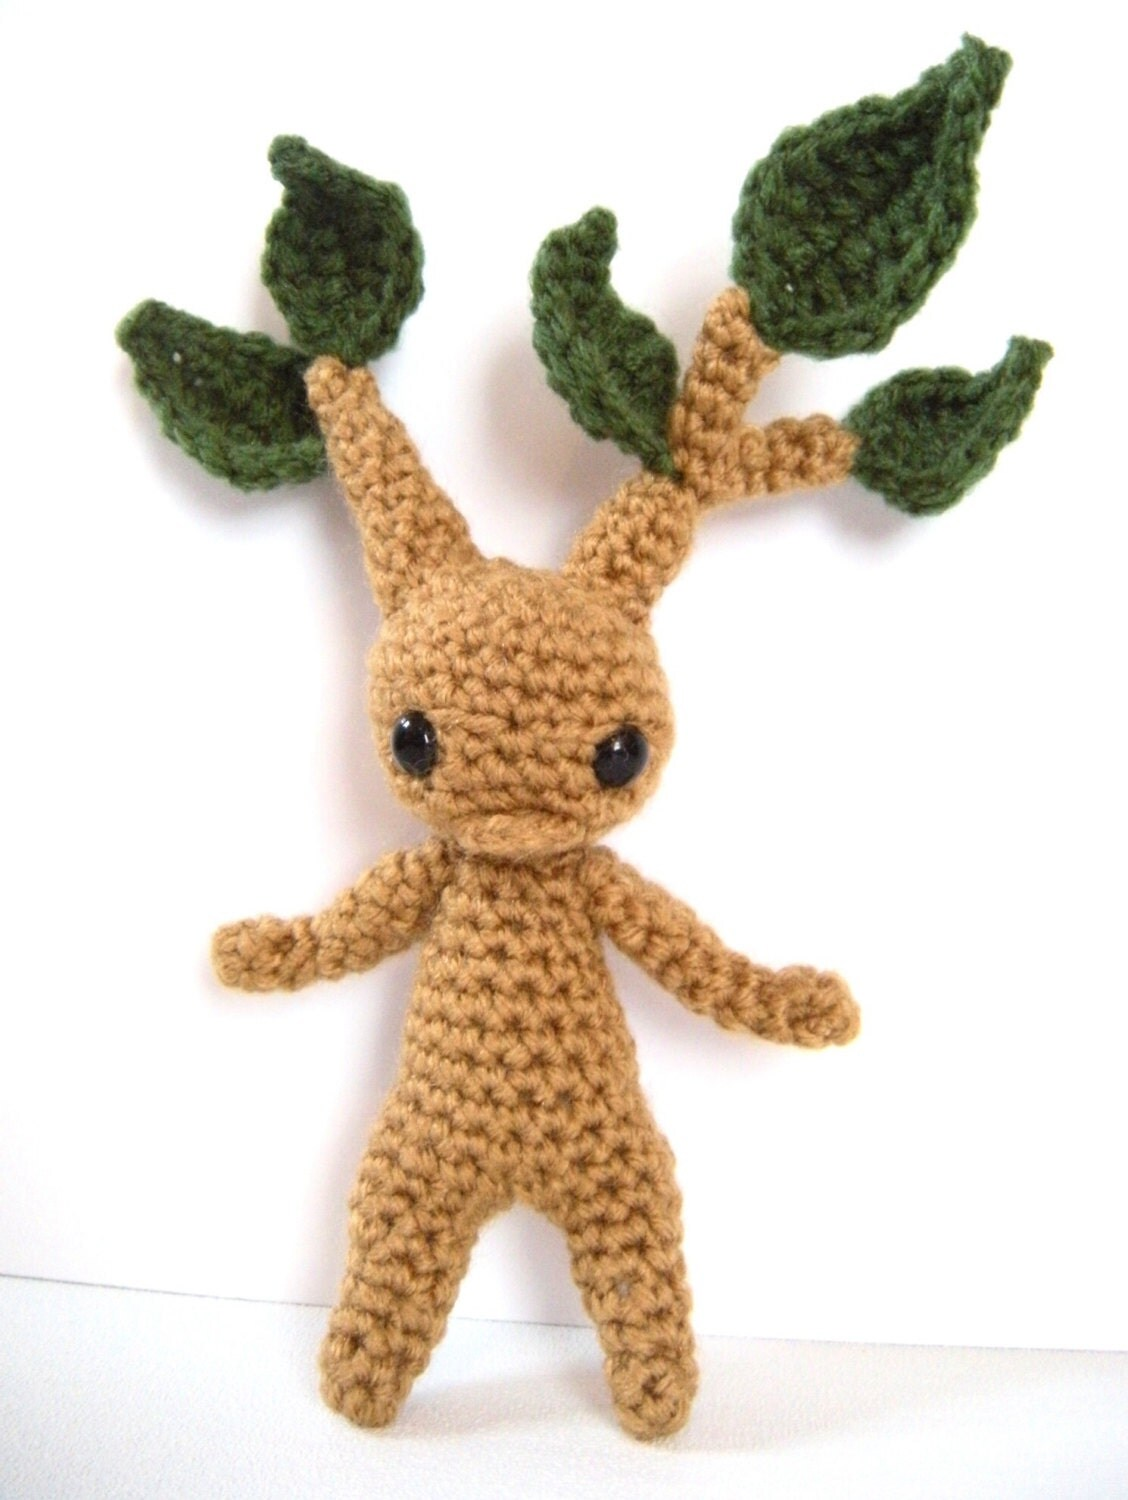 Amigurumi Mandrake : Mandrake Amigurumi Mandrake Crochet Root Harry Potter Baby